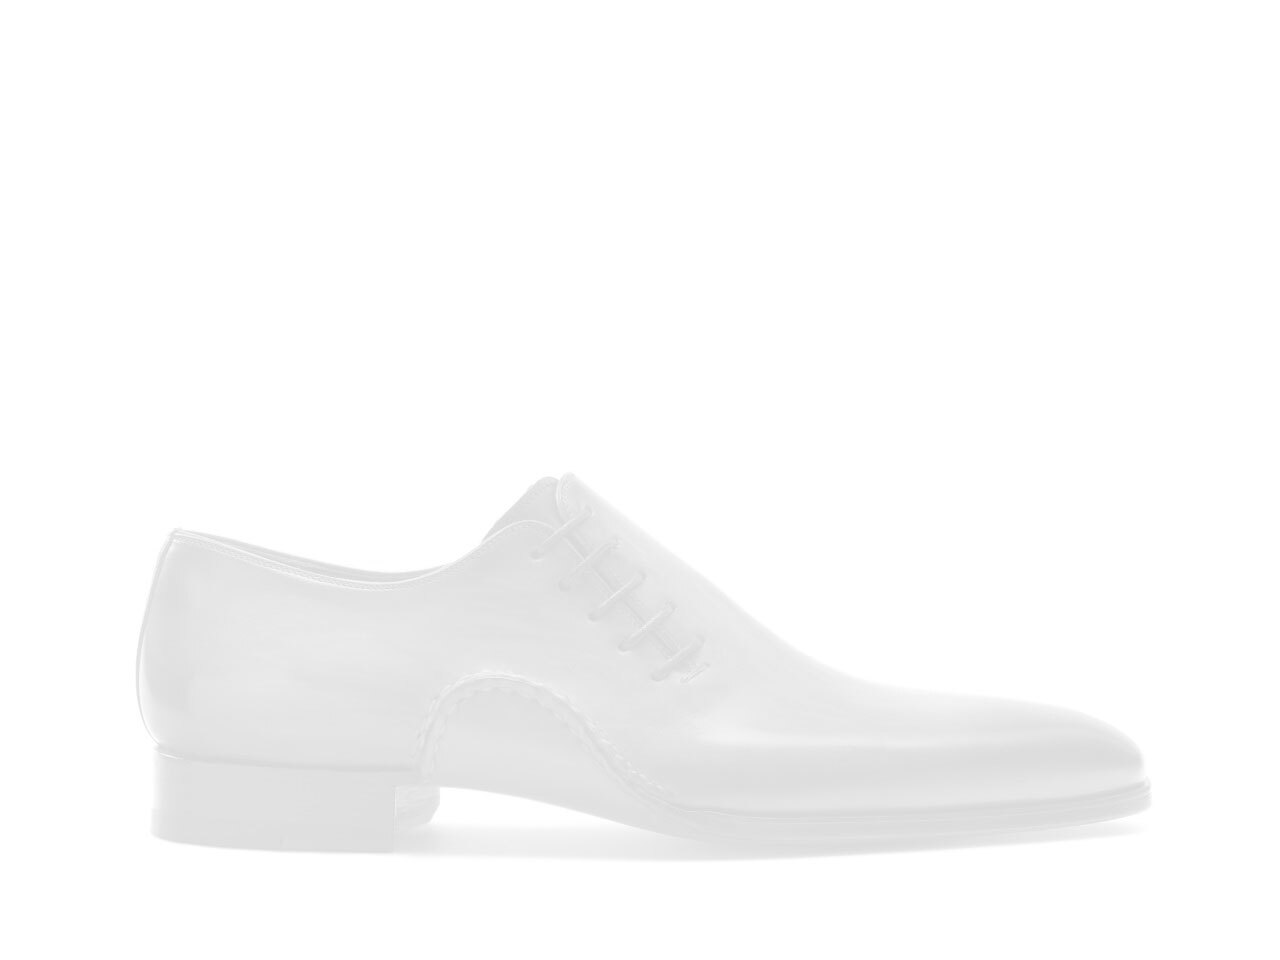 Side view of the Magnanni Bates Lo Black Men's Sneakers